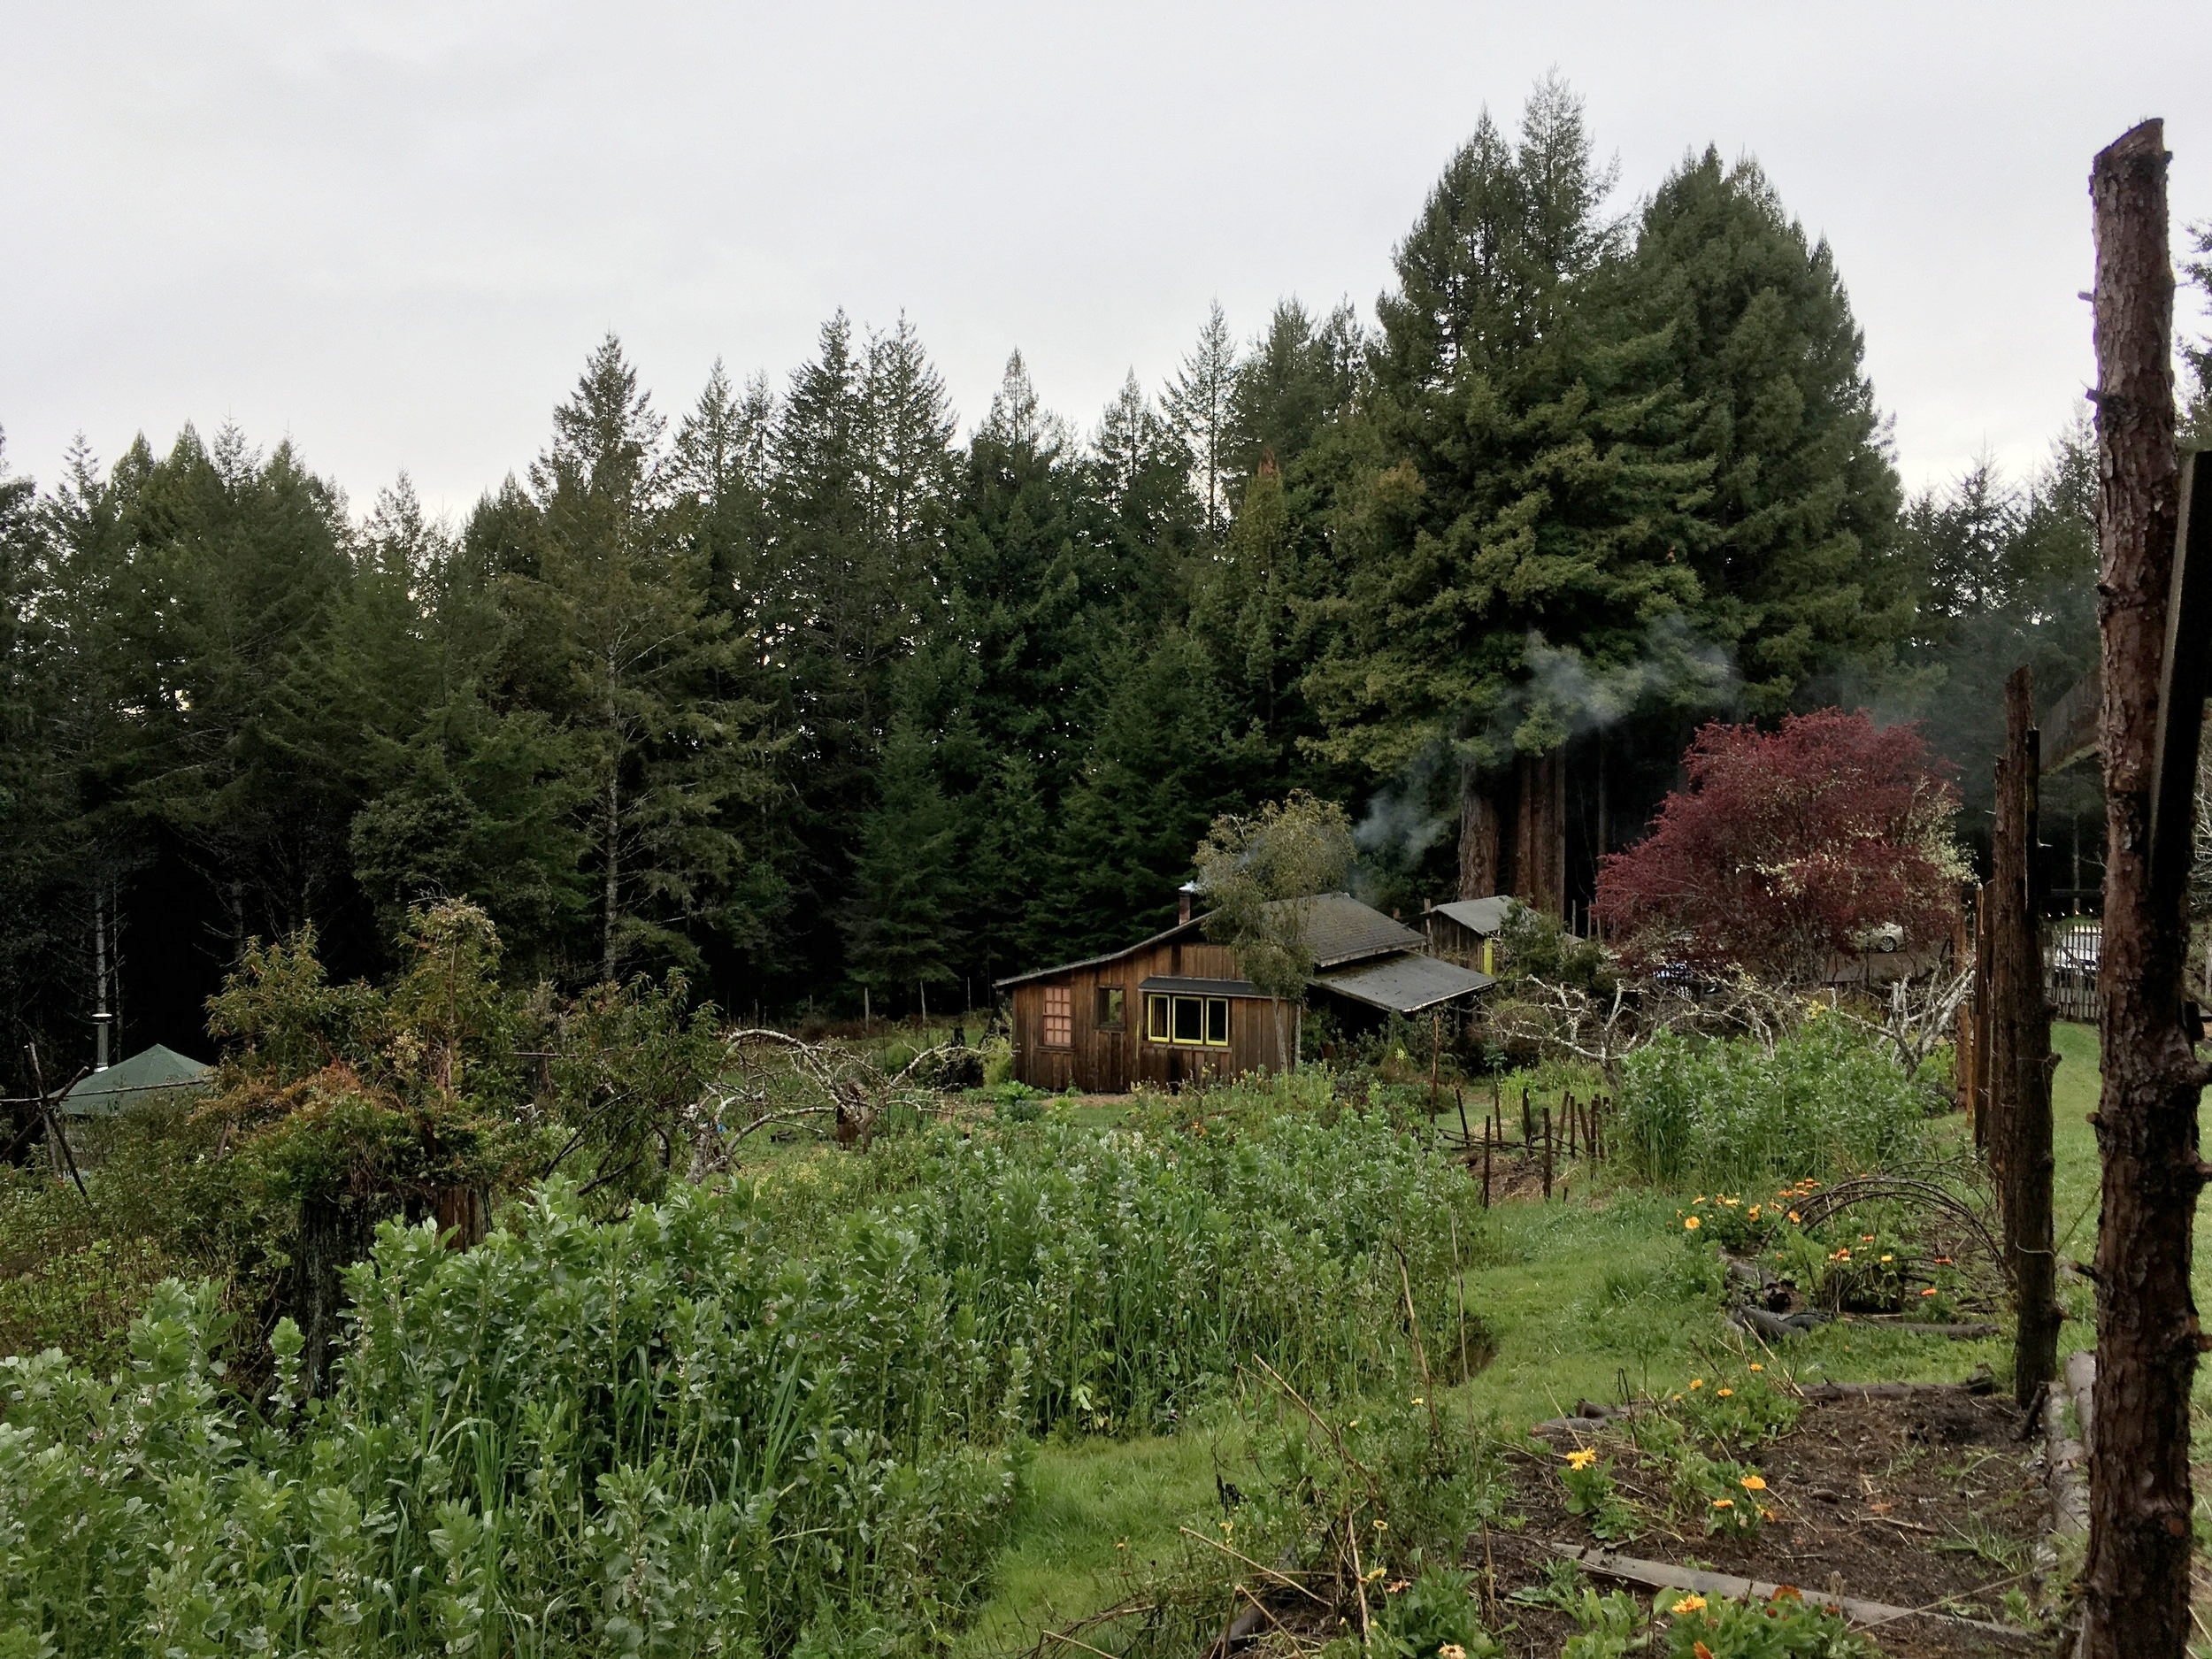 View of Orchard Cabin, Salmon Creek Farm, February 2018.